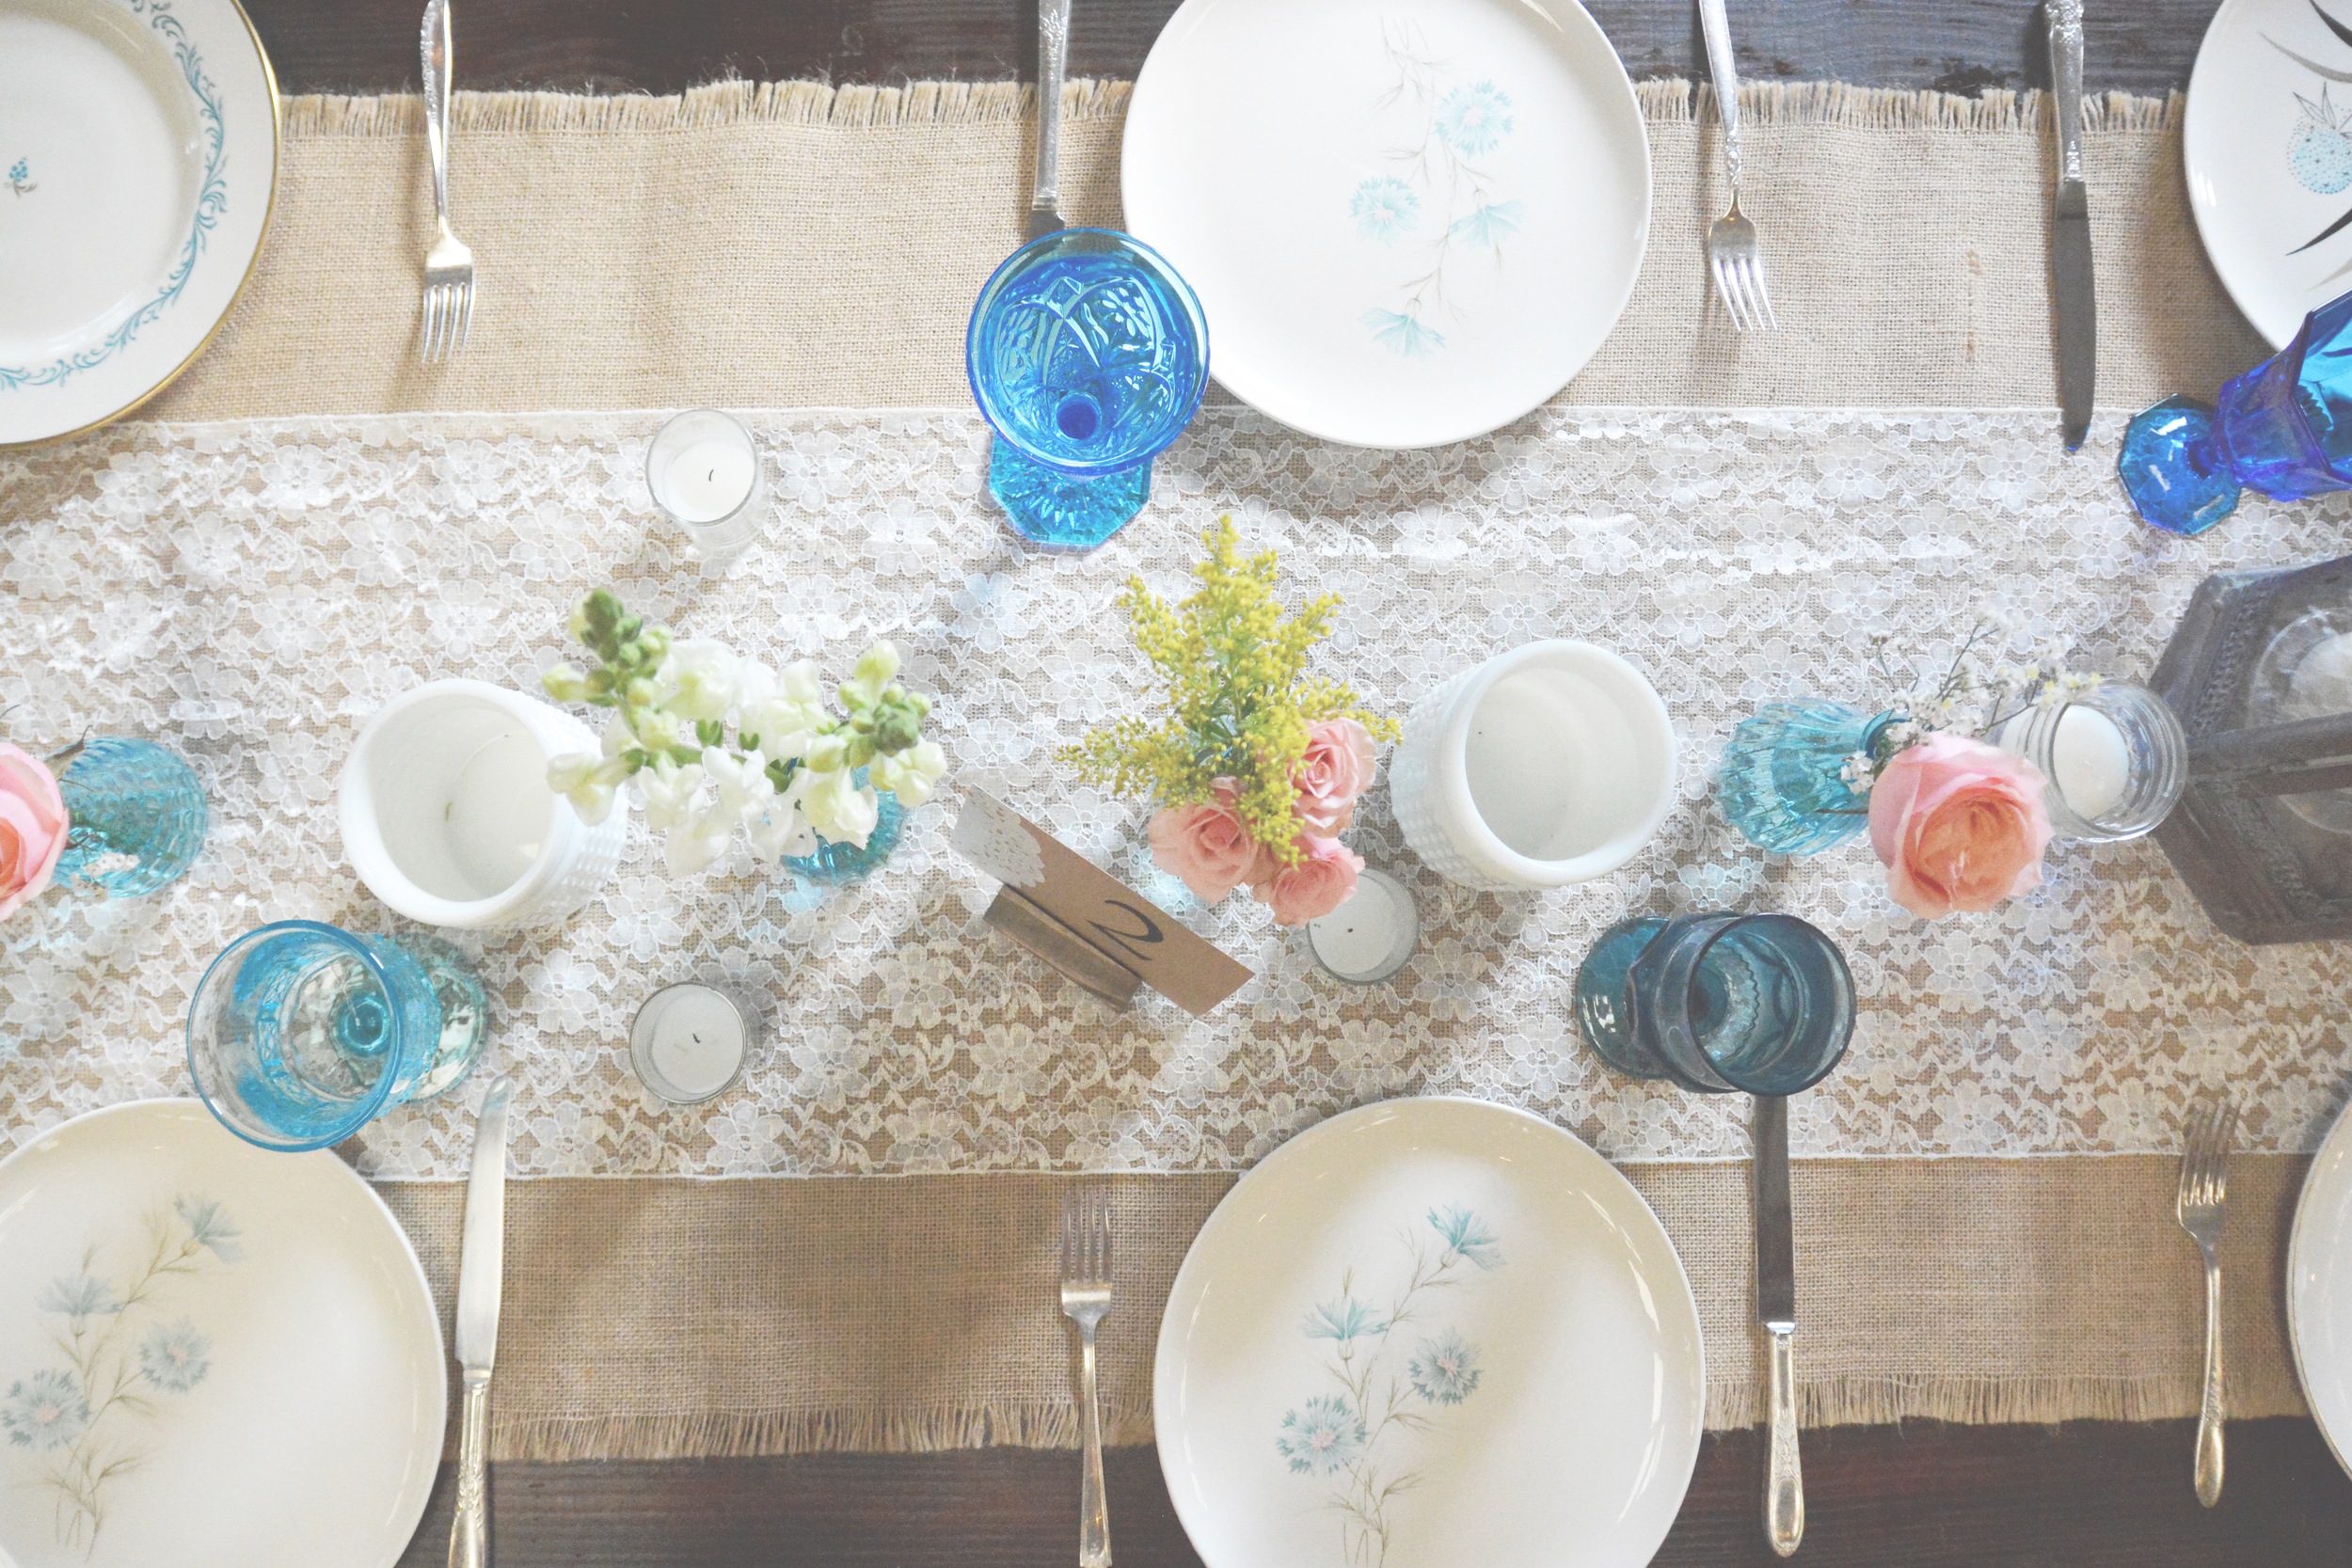 Love the mix of classic and mid-century china.